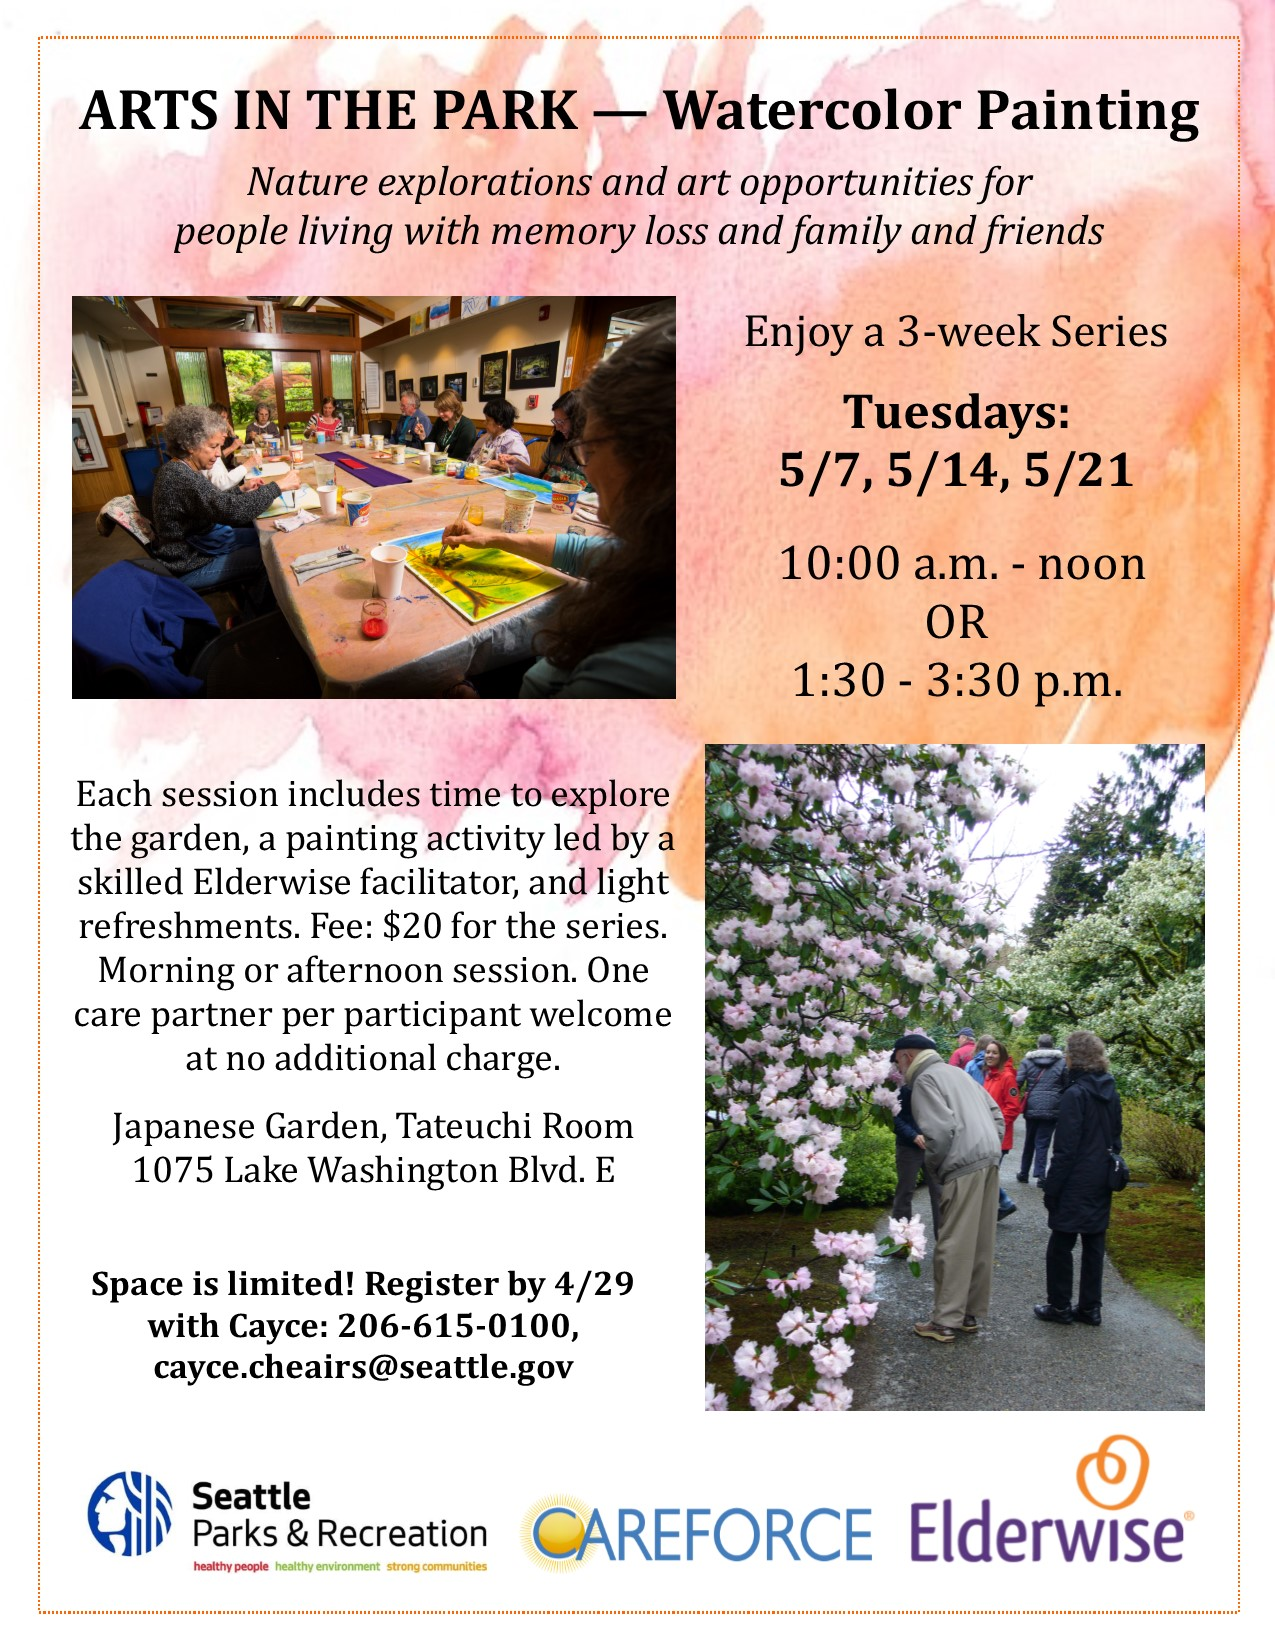 Arts in the Park Japanese Garden Flyer Spring 2019 with dates.jpg